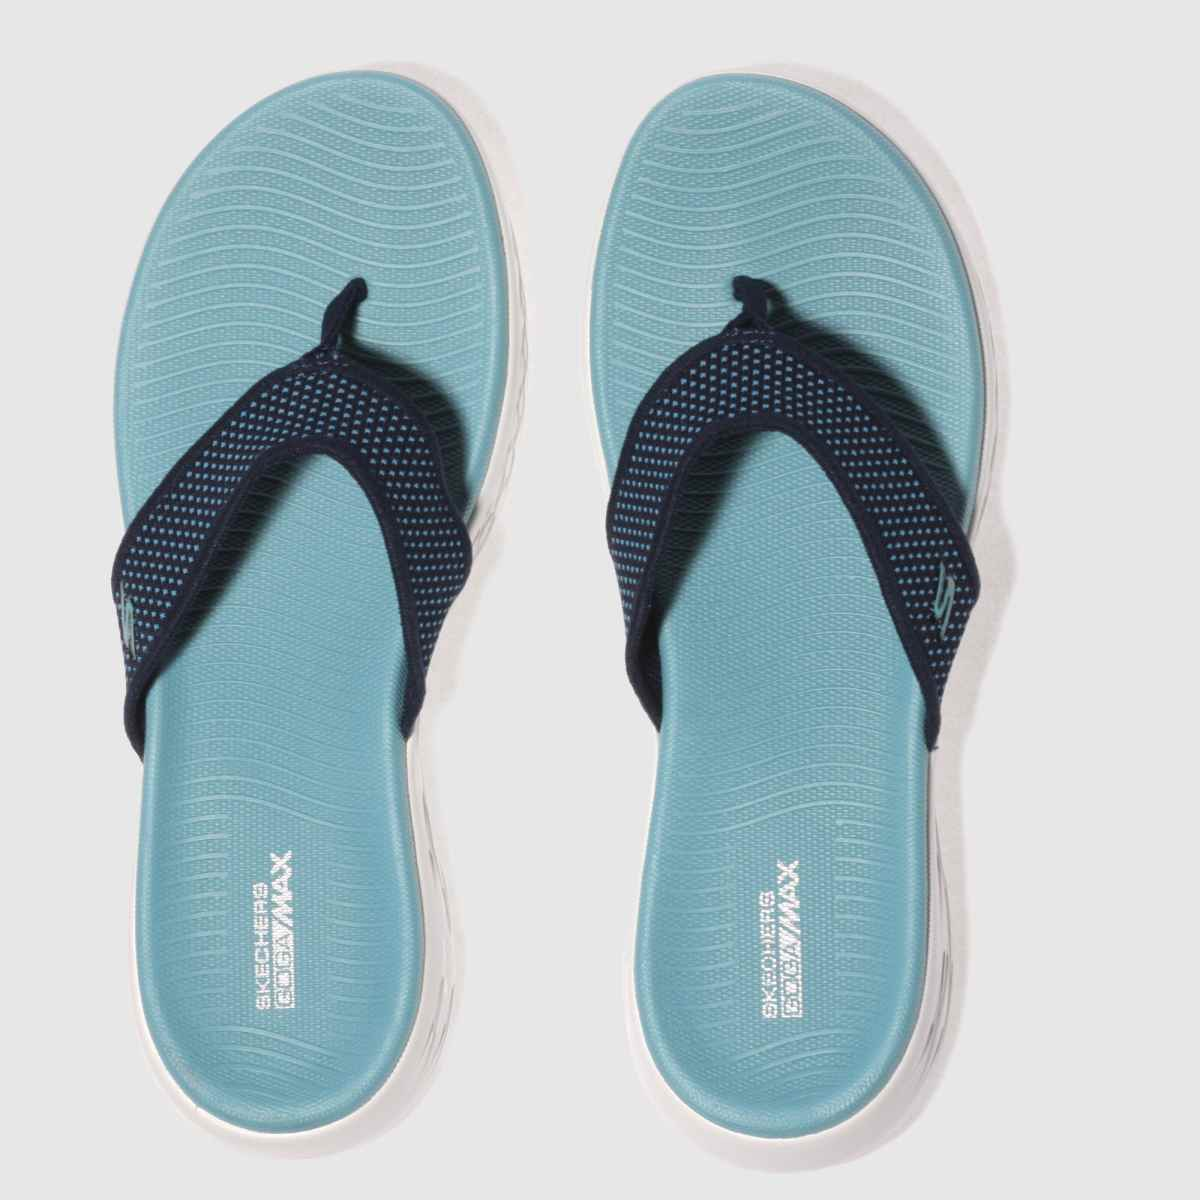 Skechers Navy On The Go 600 Sandals